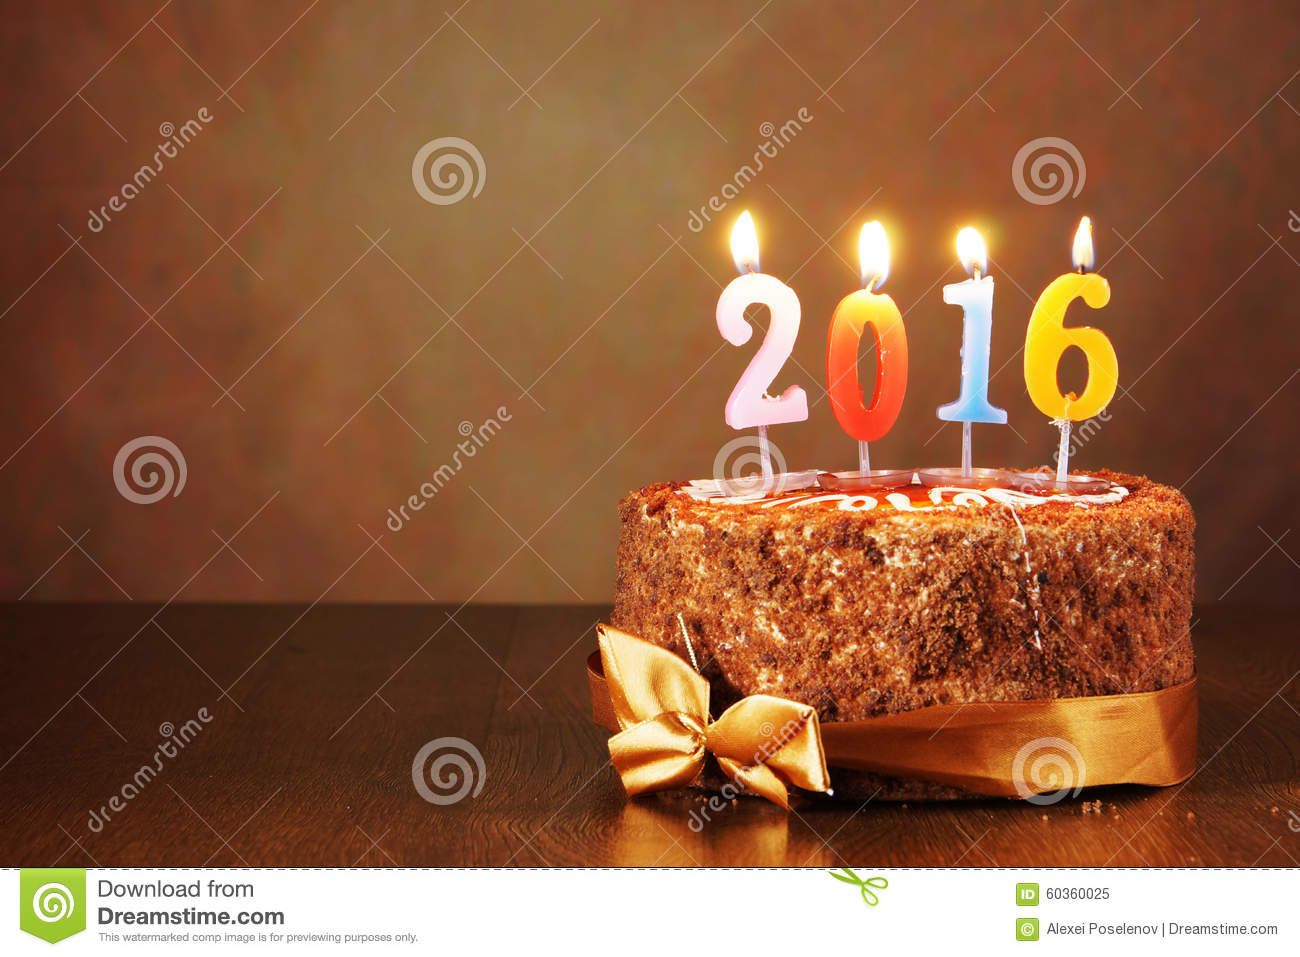 New Year Chocolate Cake Images : New Year 2016 Still Life. Chocolate Cake And Burning ...